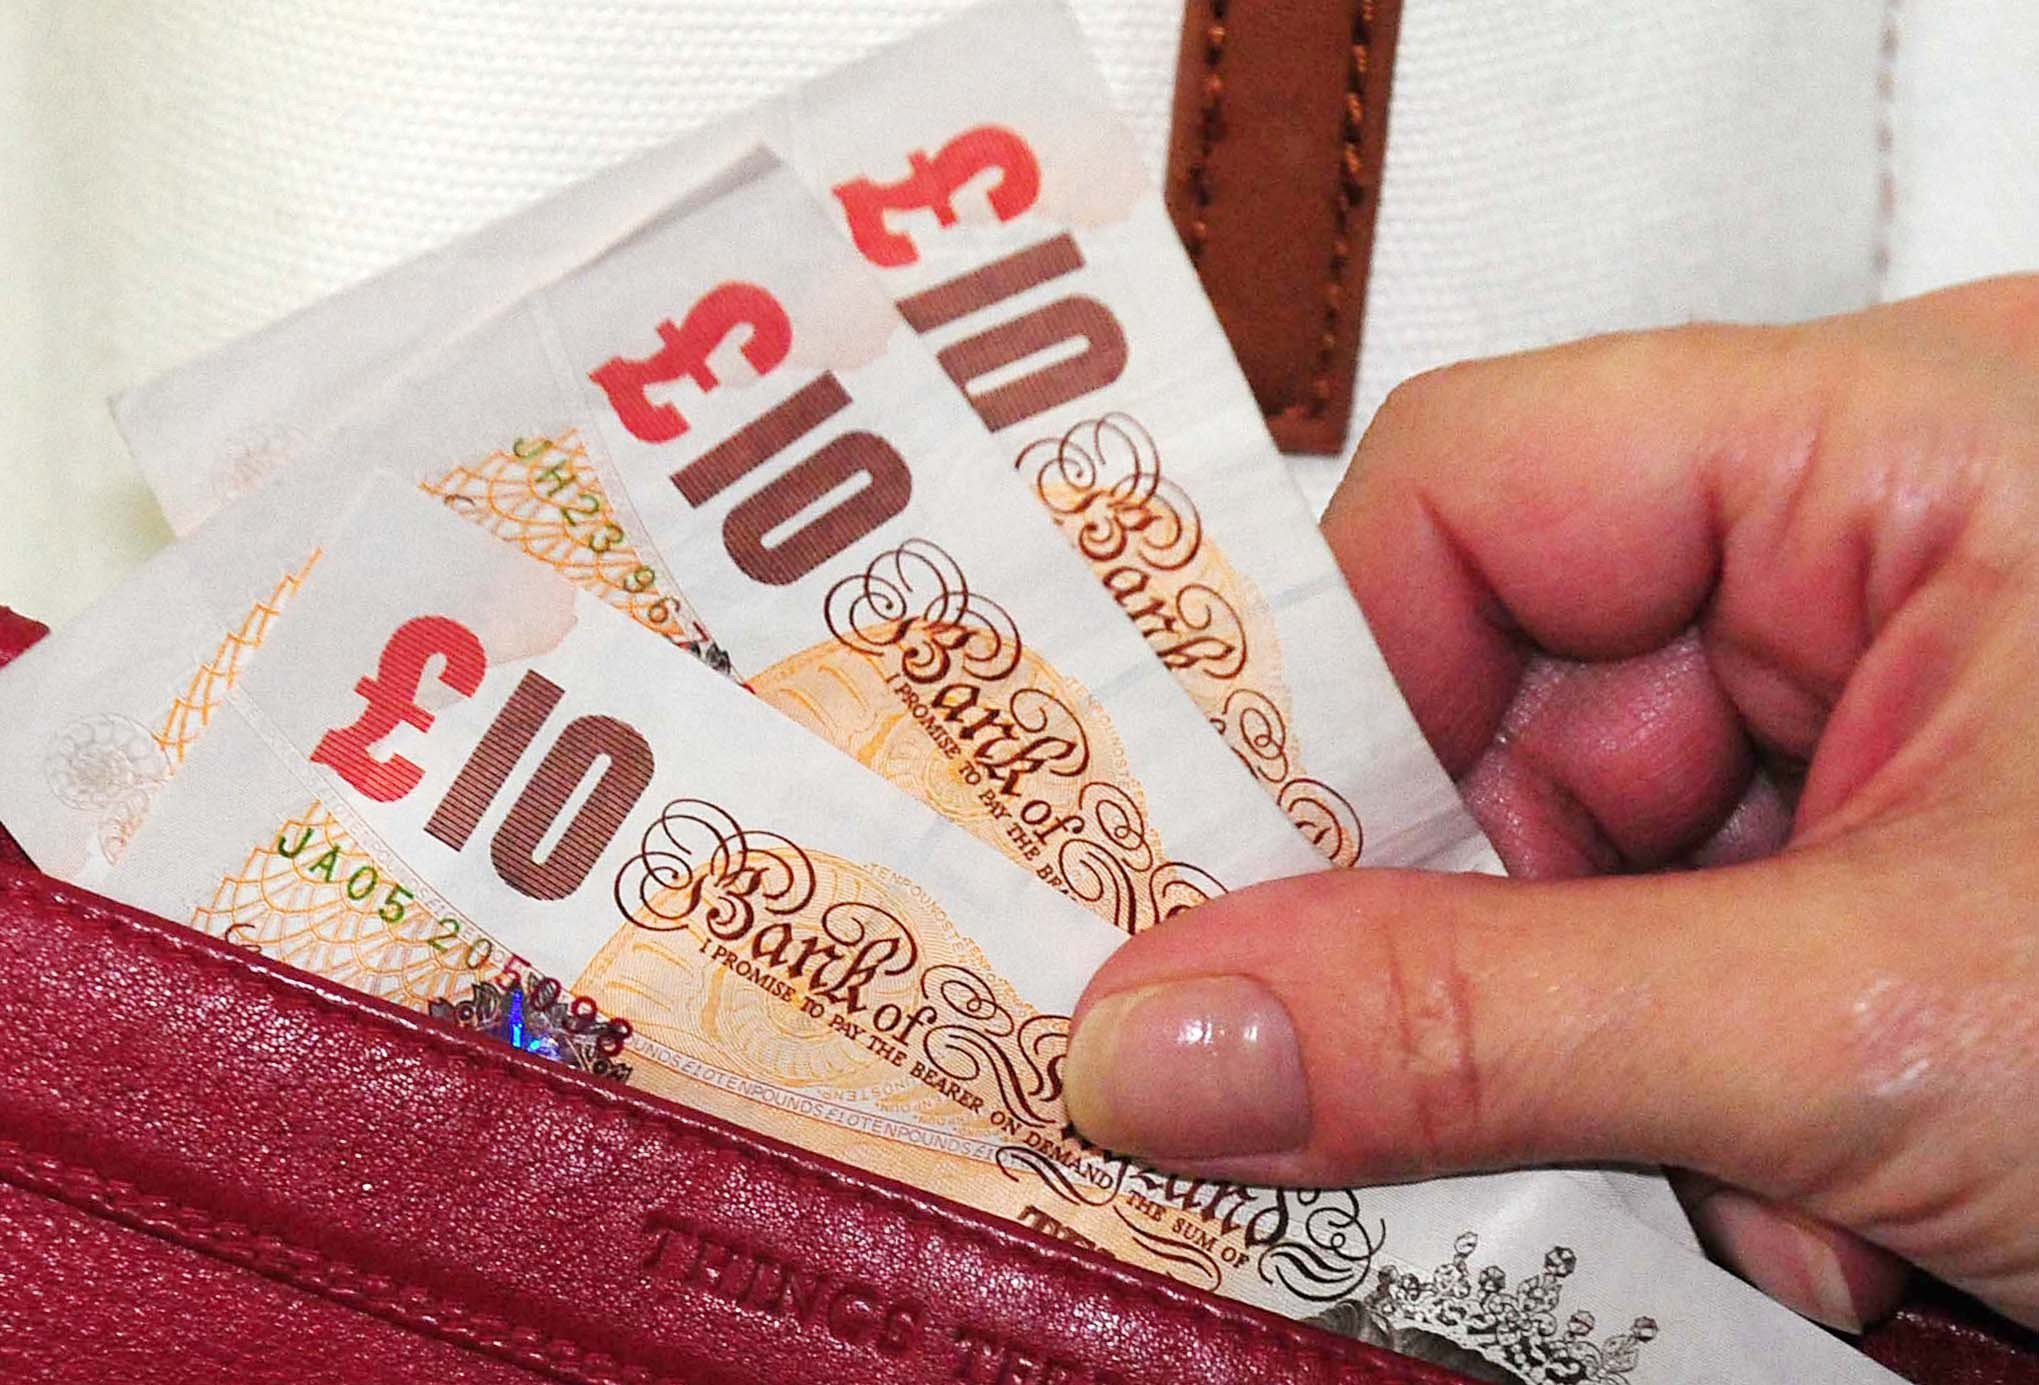 Shops are still giving people £10 notes two days before they go out of currency